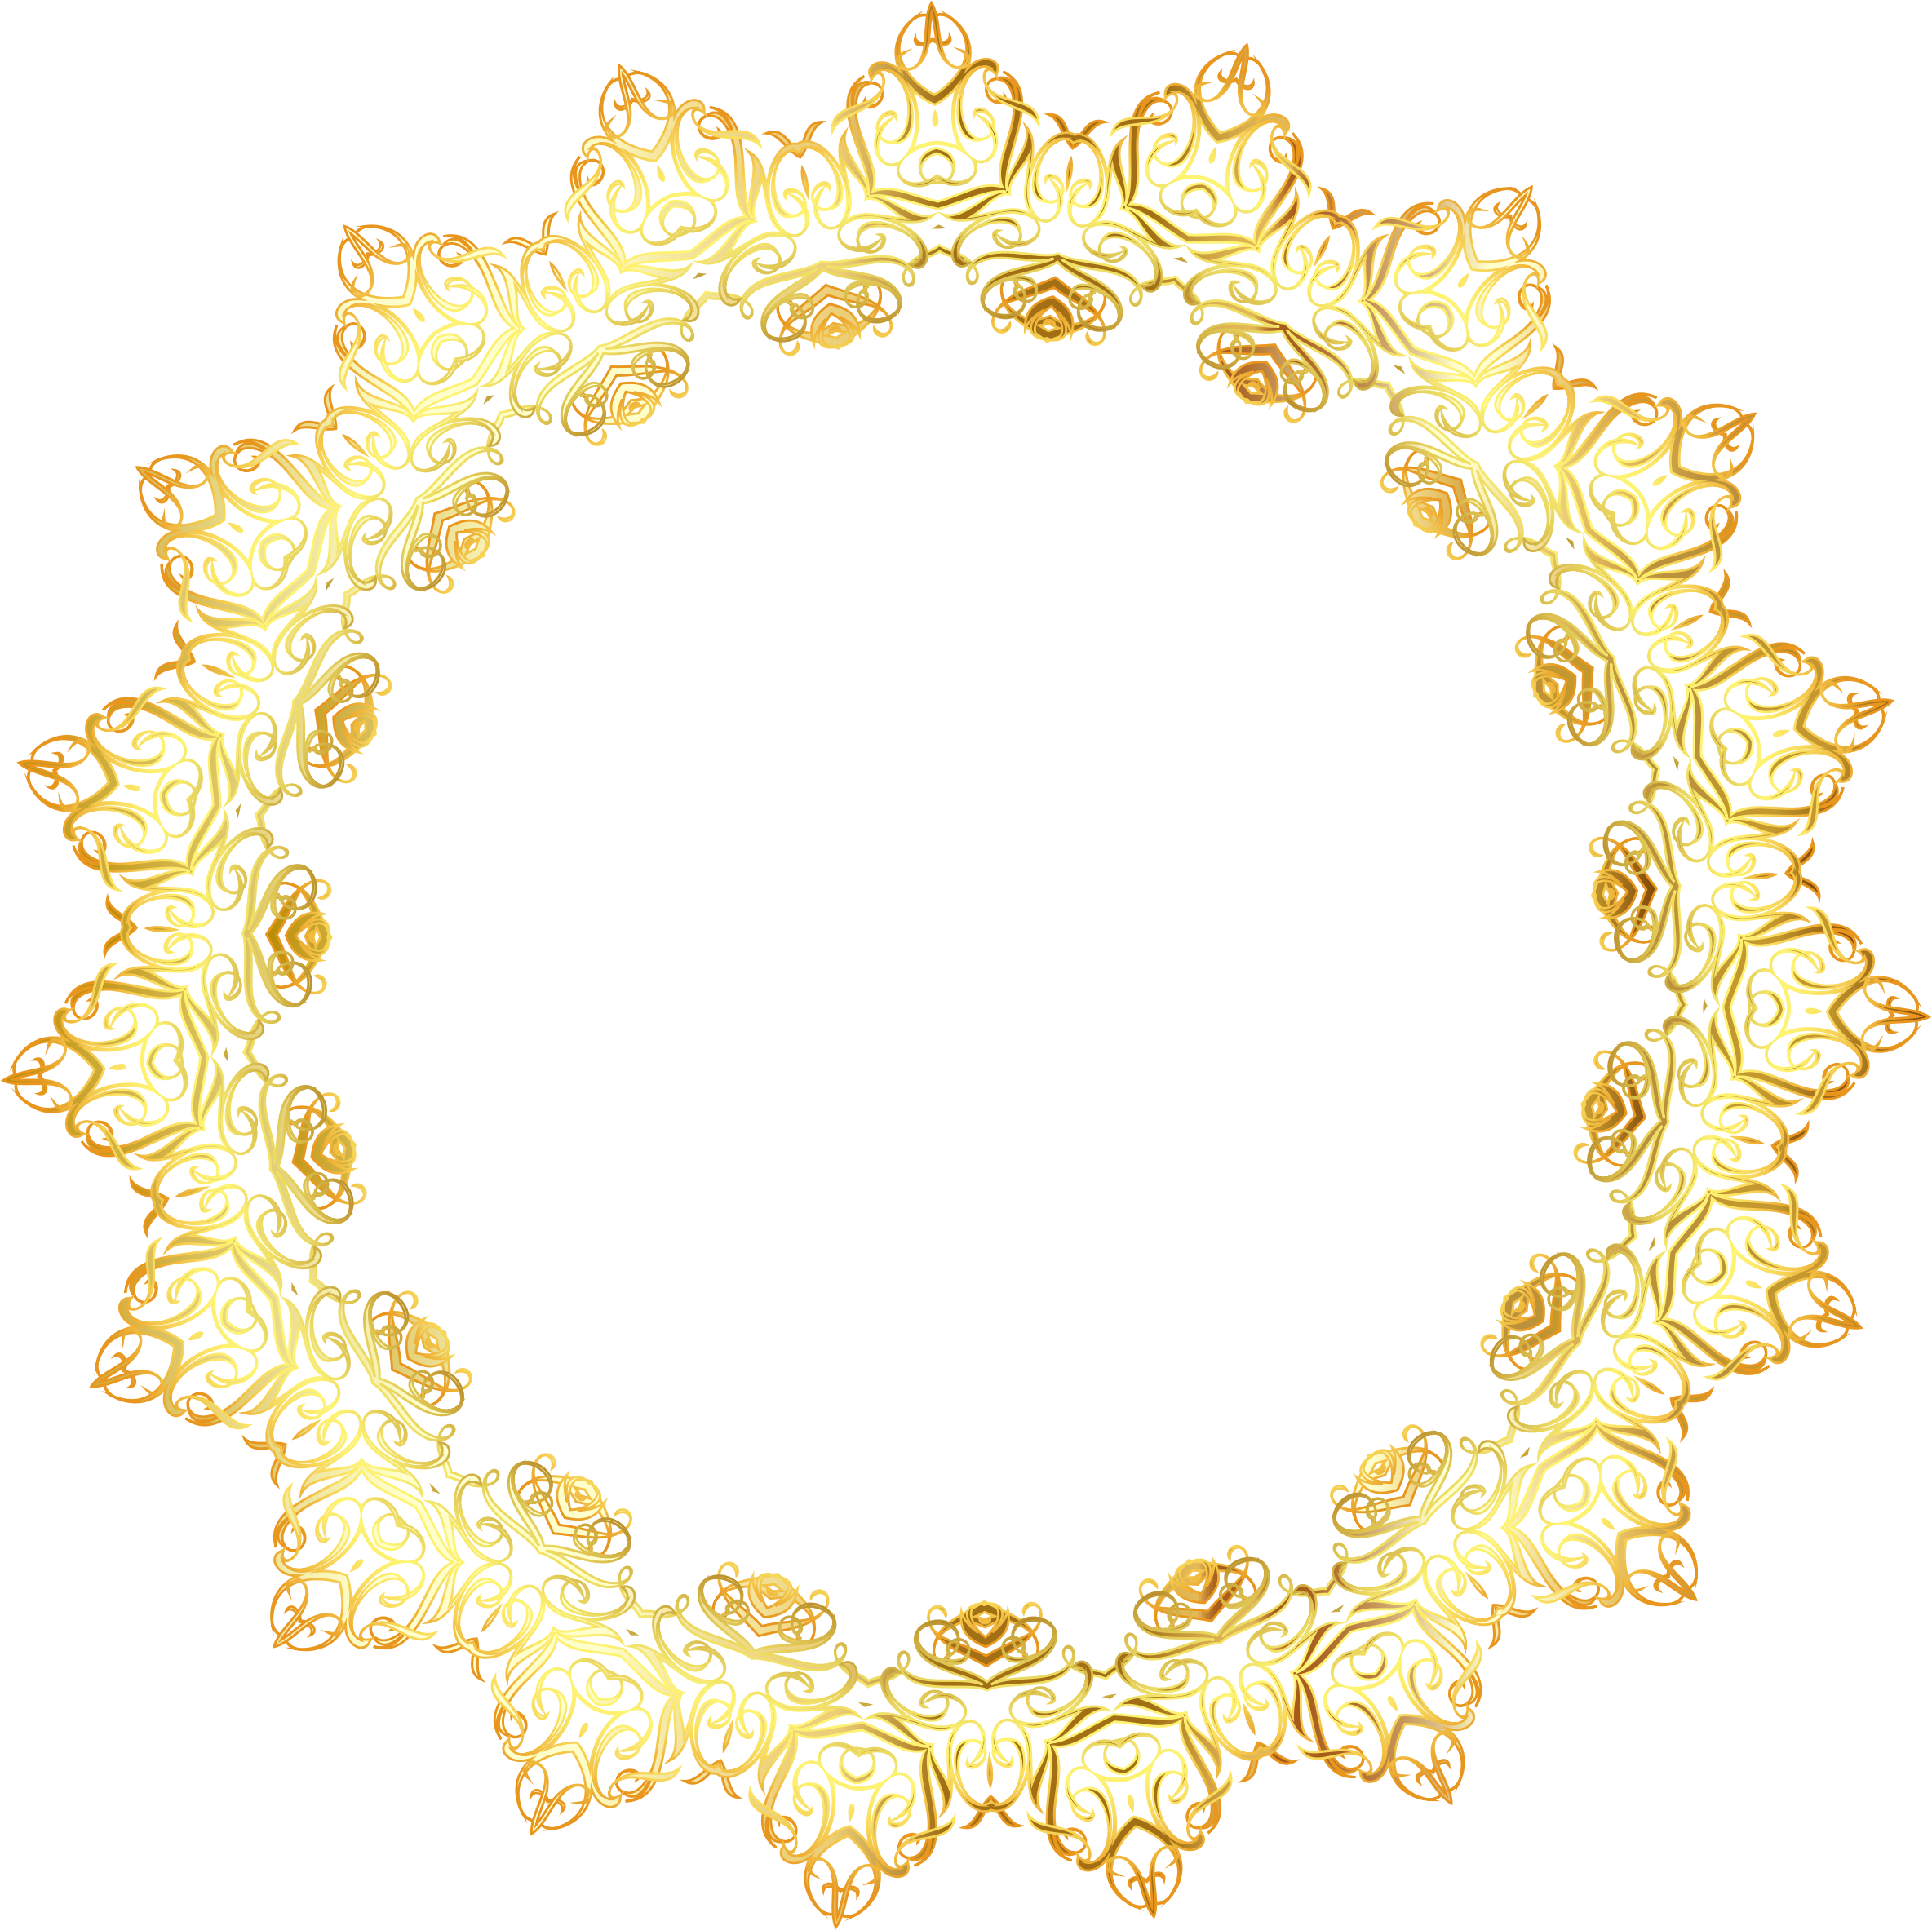 Elegant gold border png. Abstract frame no background